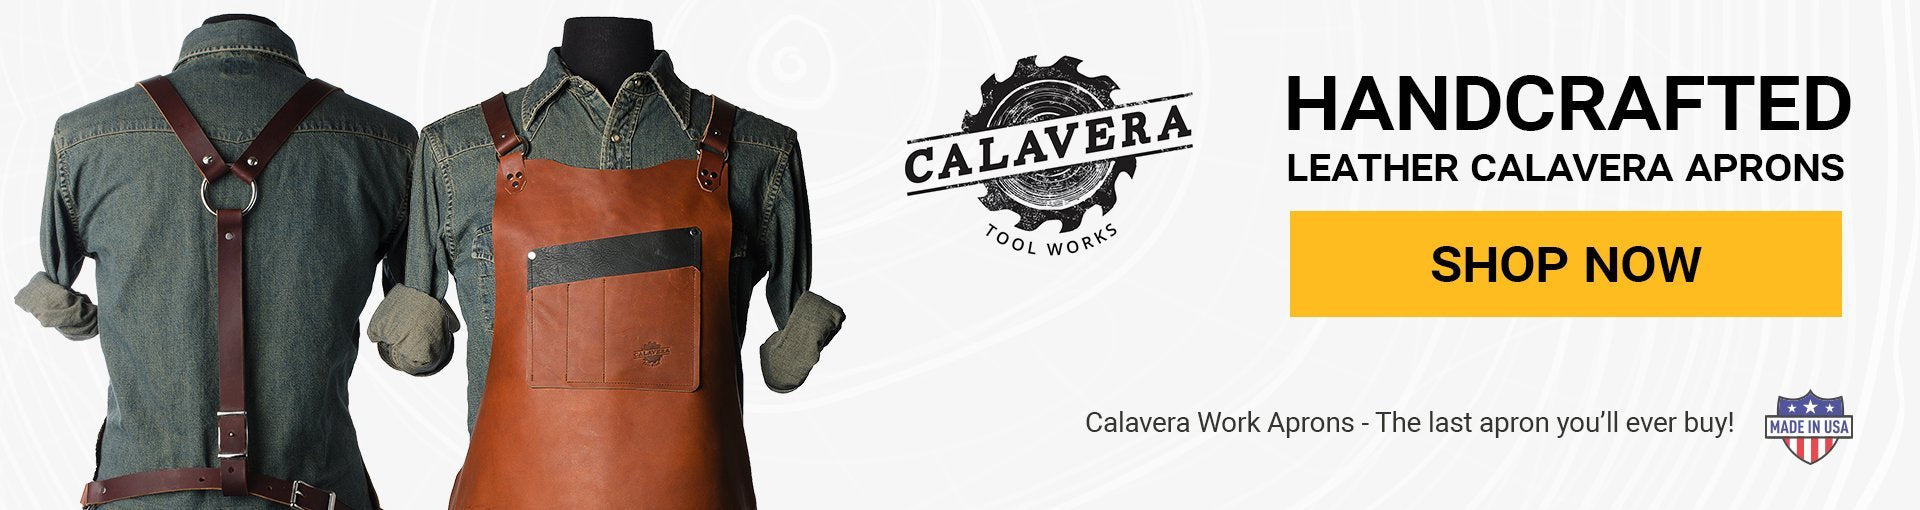 Calavera Aprons Available Now!